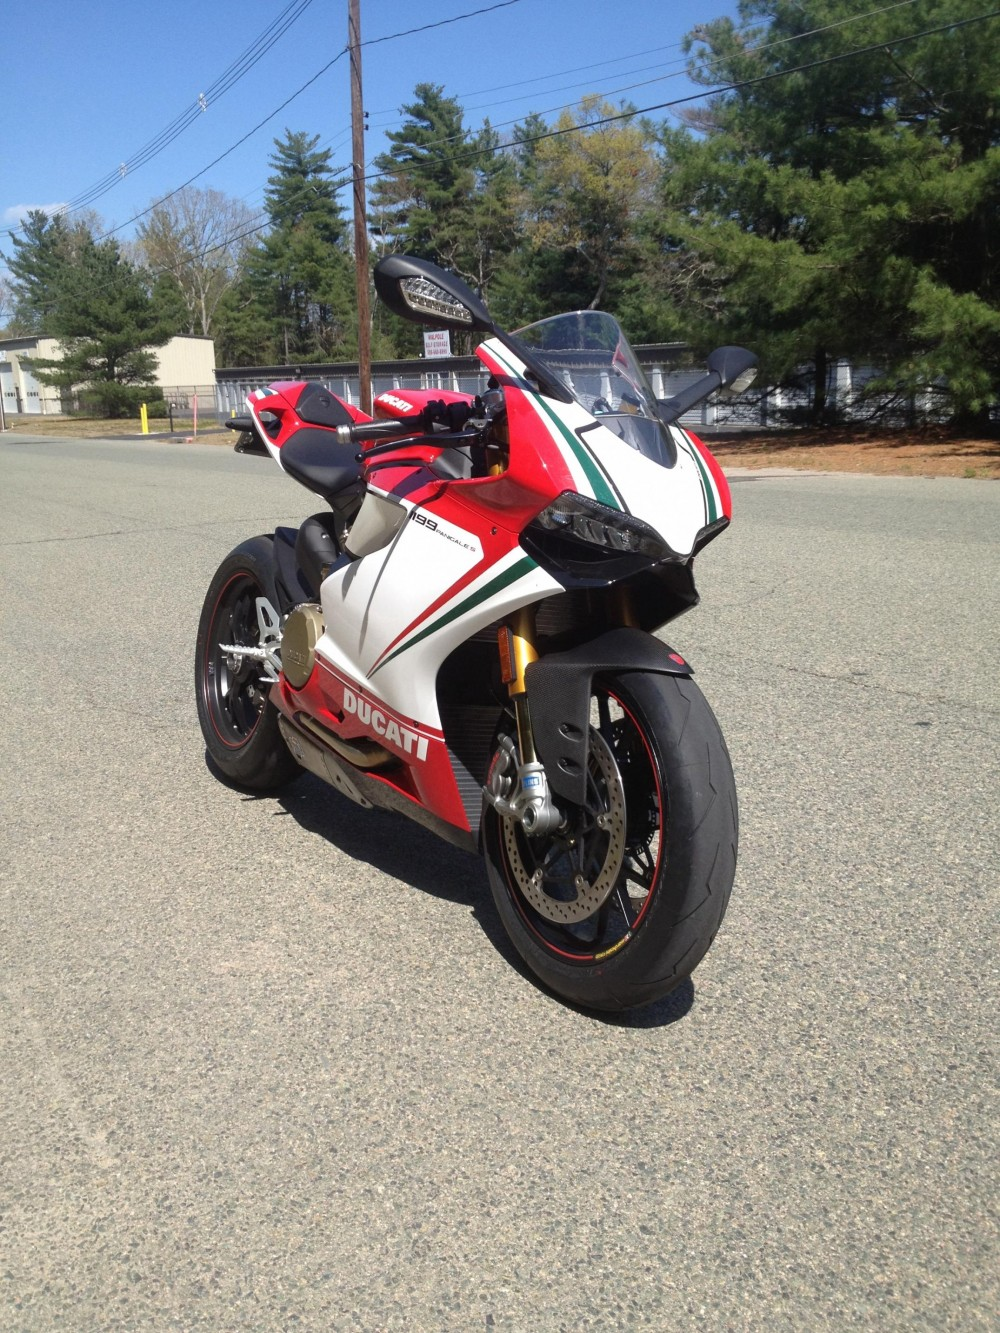 Ducati 1199 S Panigale Tricolore Co may sieu long moi con tim - 10